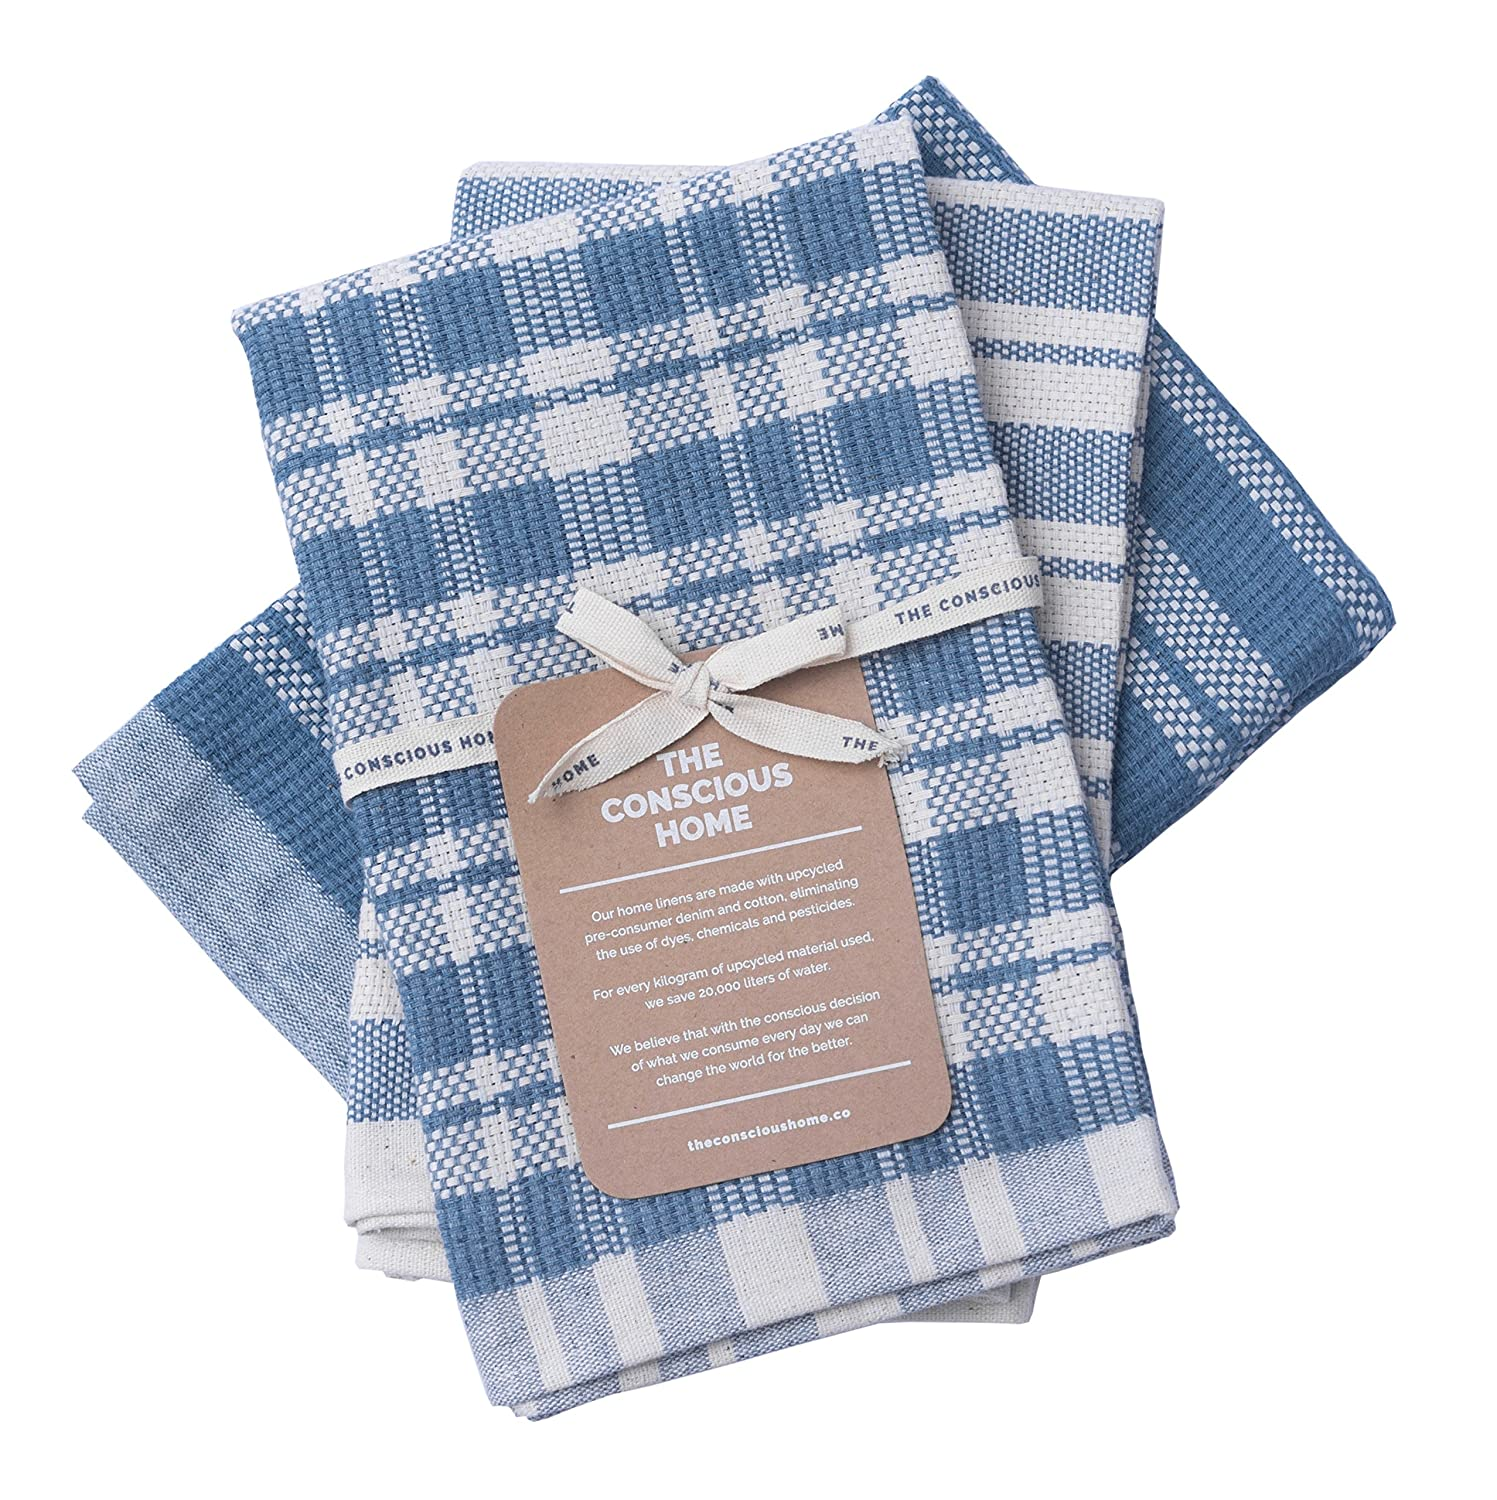 Eco Luxury Cotton Tea Towels | 100% Eco-Friendly Upcycled Denim Cotton Kitchen Towels | Soft and Super Absorbent, Premium Quality | Natural and Blue, Beautiful Design | 3-Pack, 50 x 66 cm. The Conscious Home TCHKT3